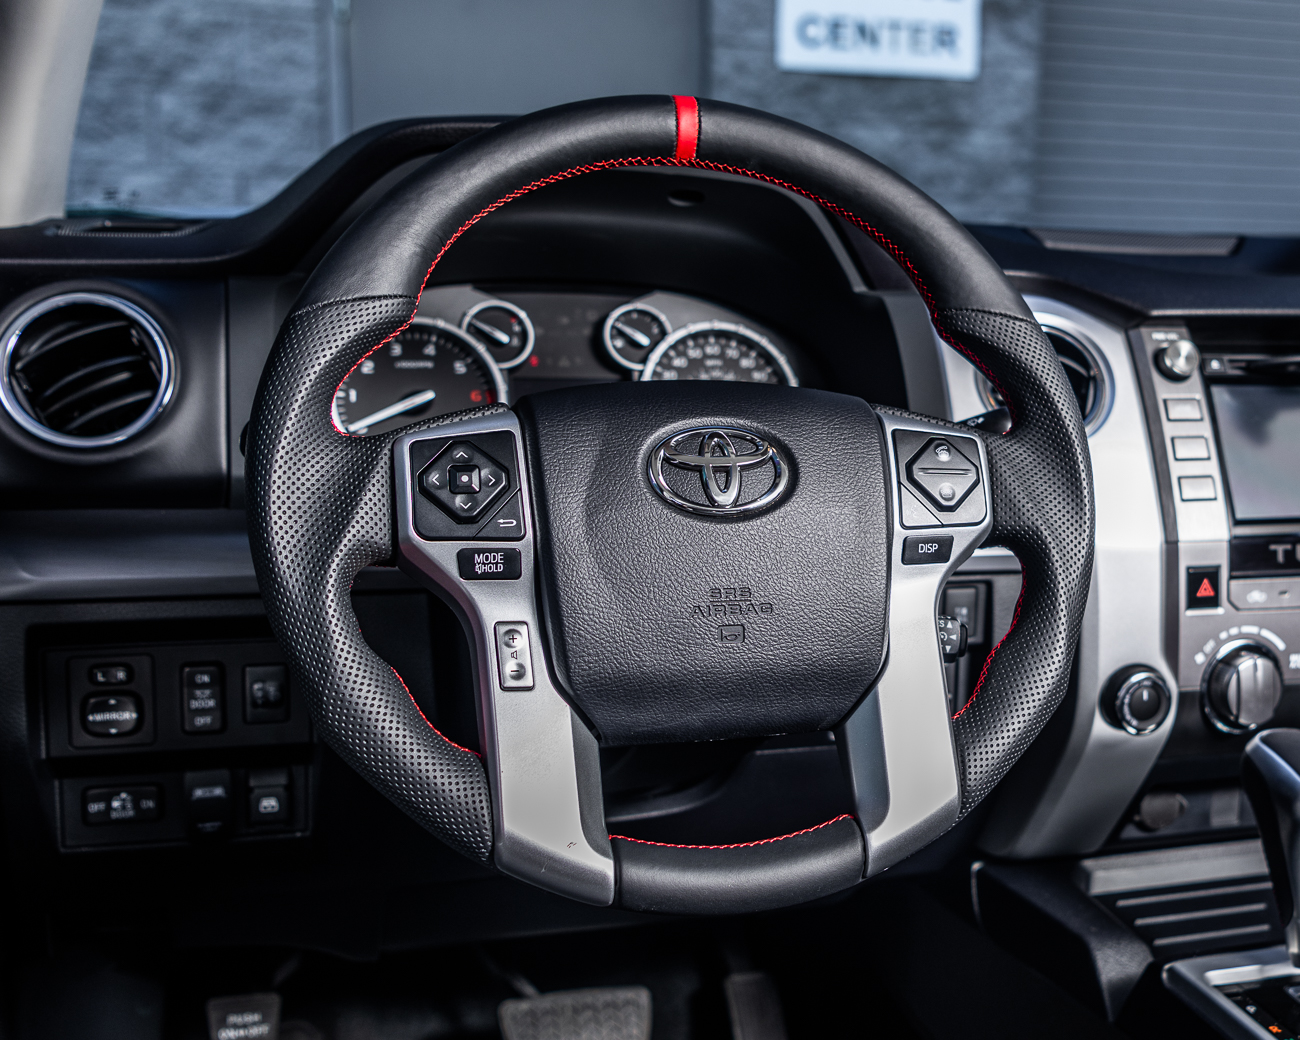 Toyota Tundra | 4Runner | Tacoma OEM Upgraded Steering Wheel - VR-TOY-TUN-STRWHL